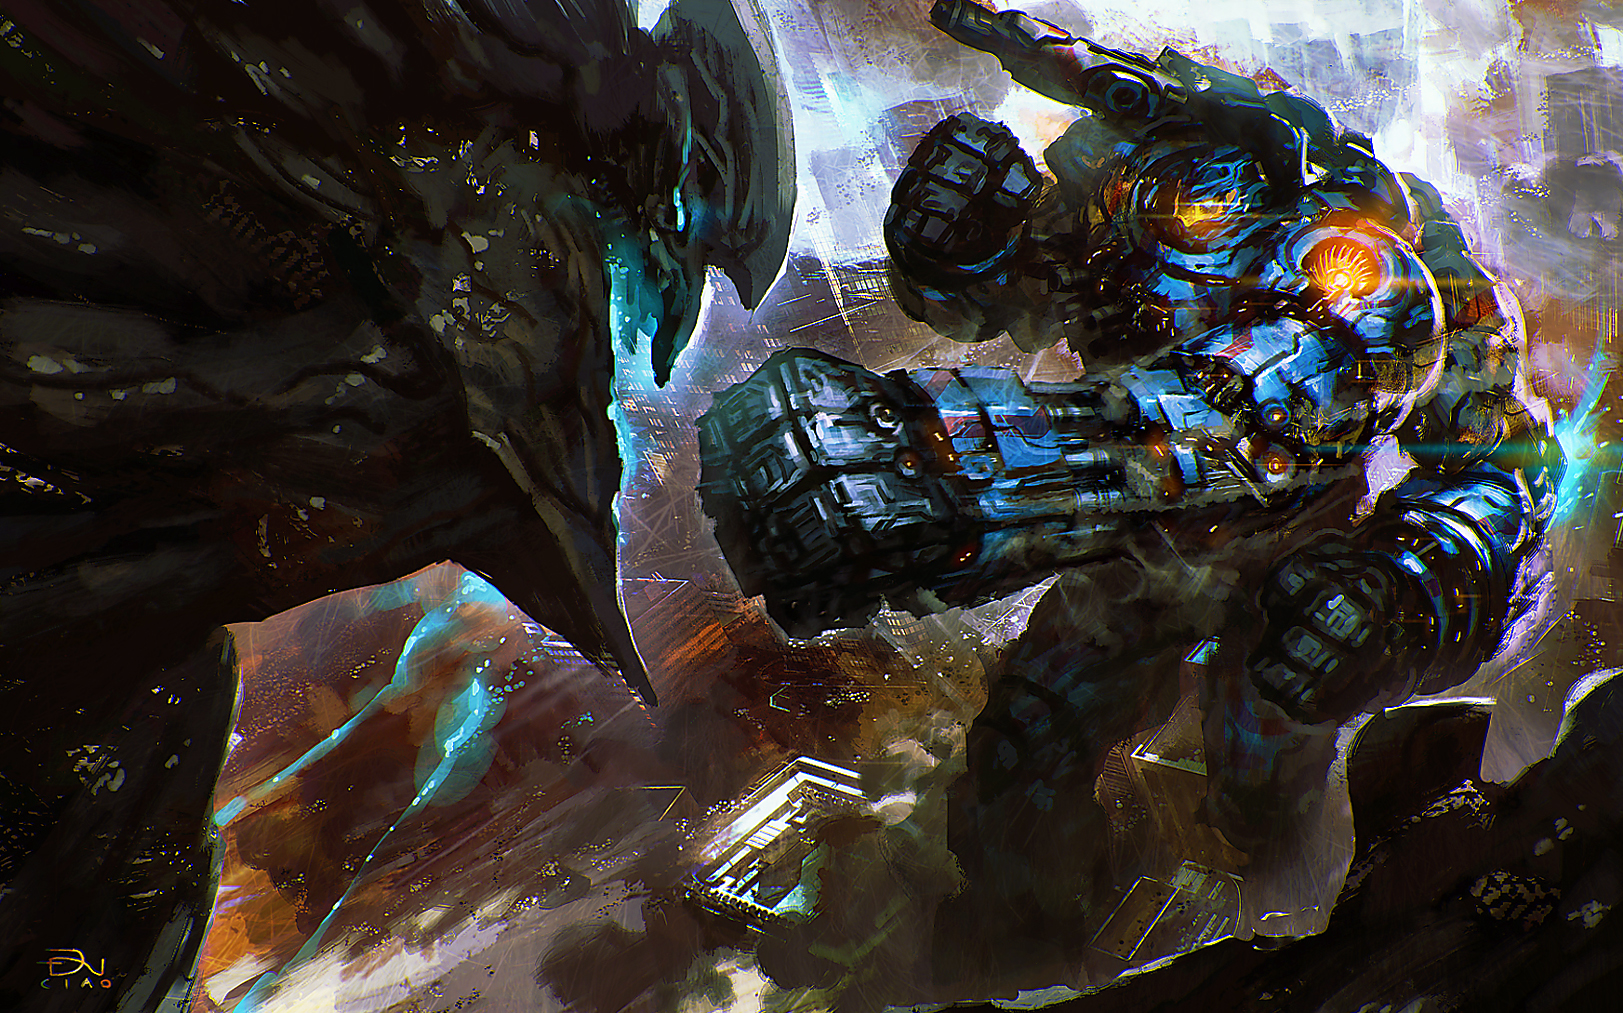 gypsy danger in pacific rim wallpapers - DriverLayer ... Pacific Rim Gypsy Danger Wallpaper 1920x1080